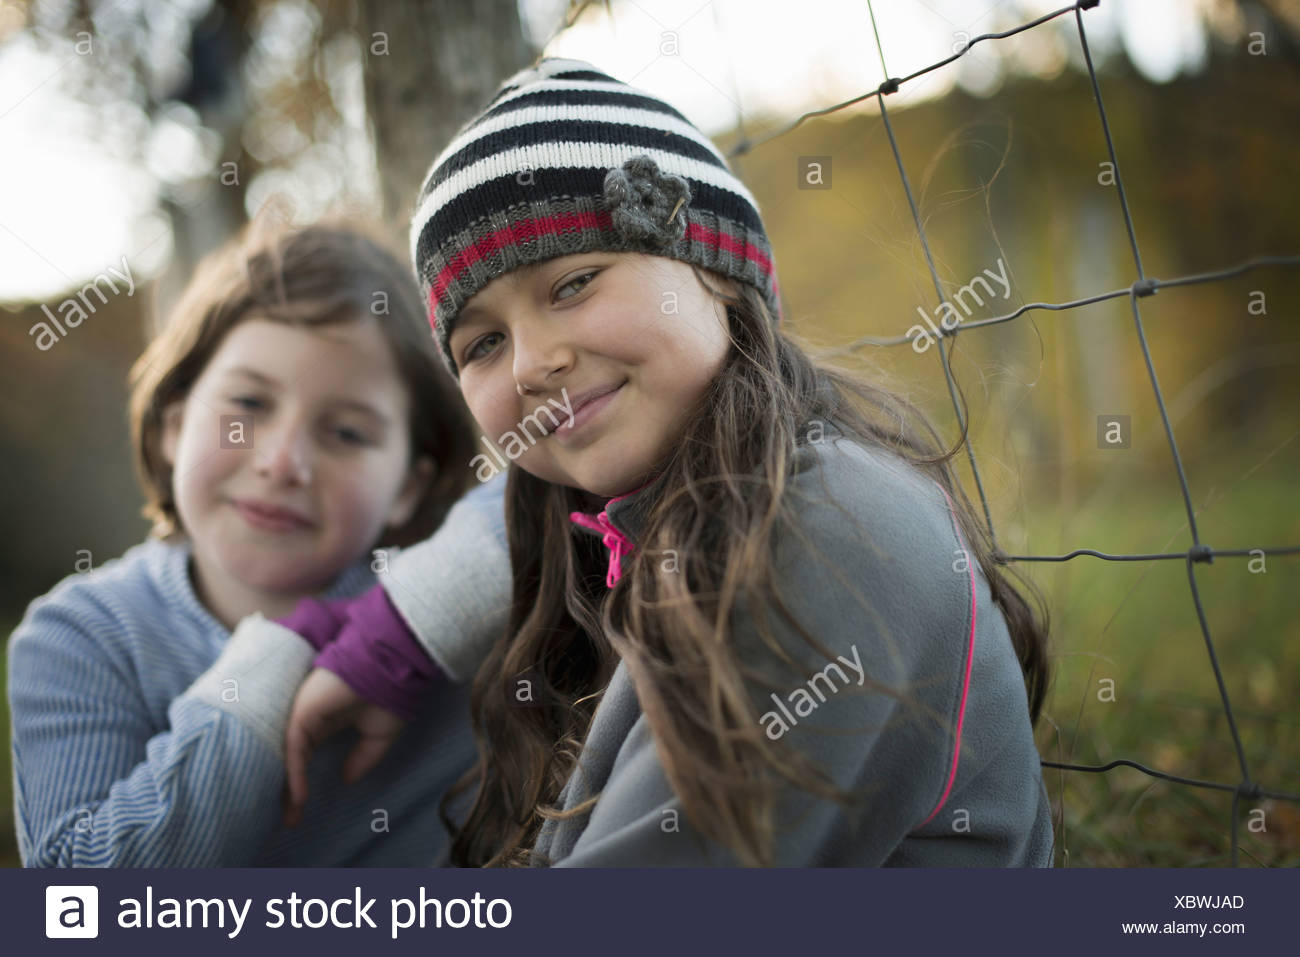 Two young girls side by side outdoors on a farm Leaning on a fence post Stock Photo